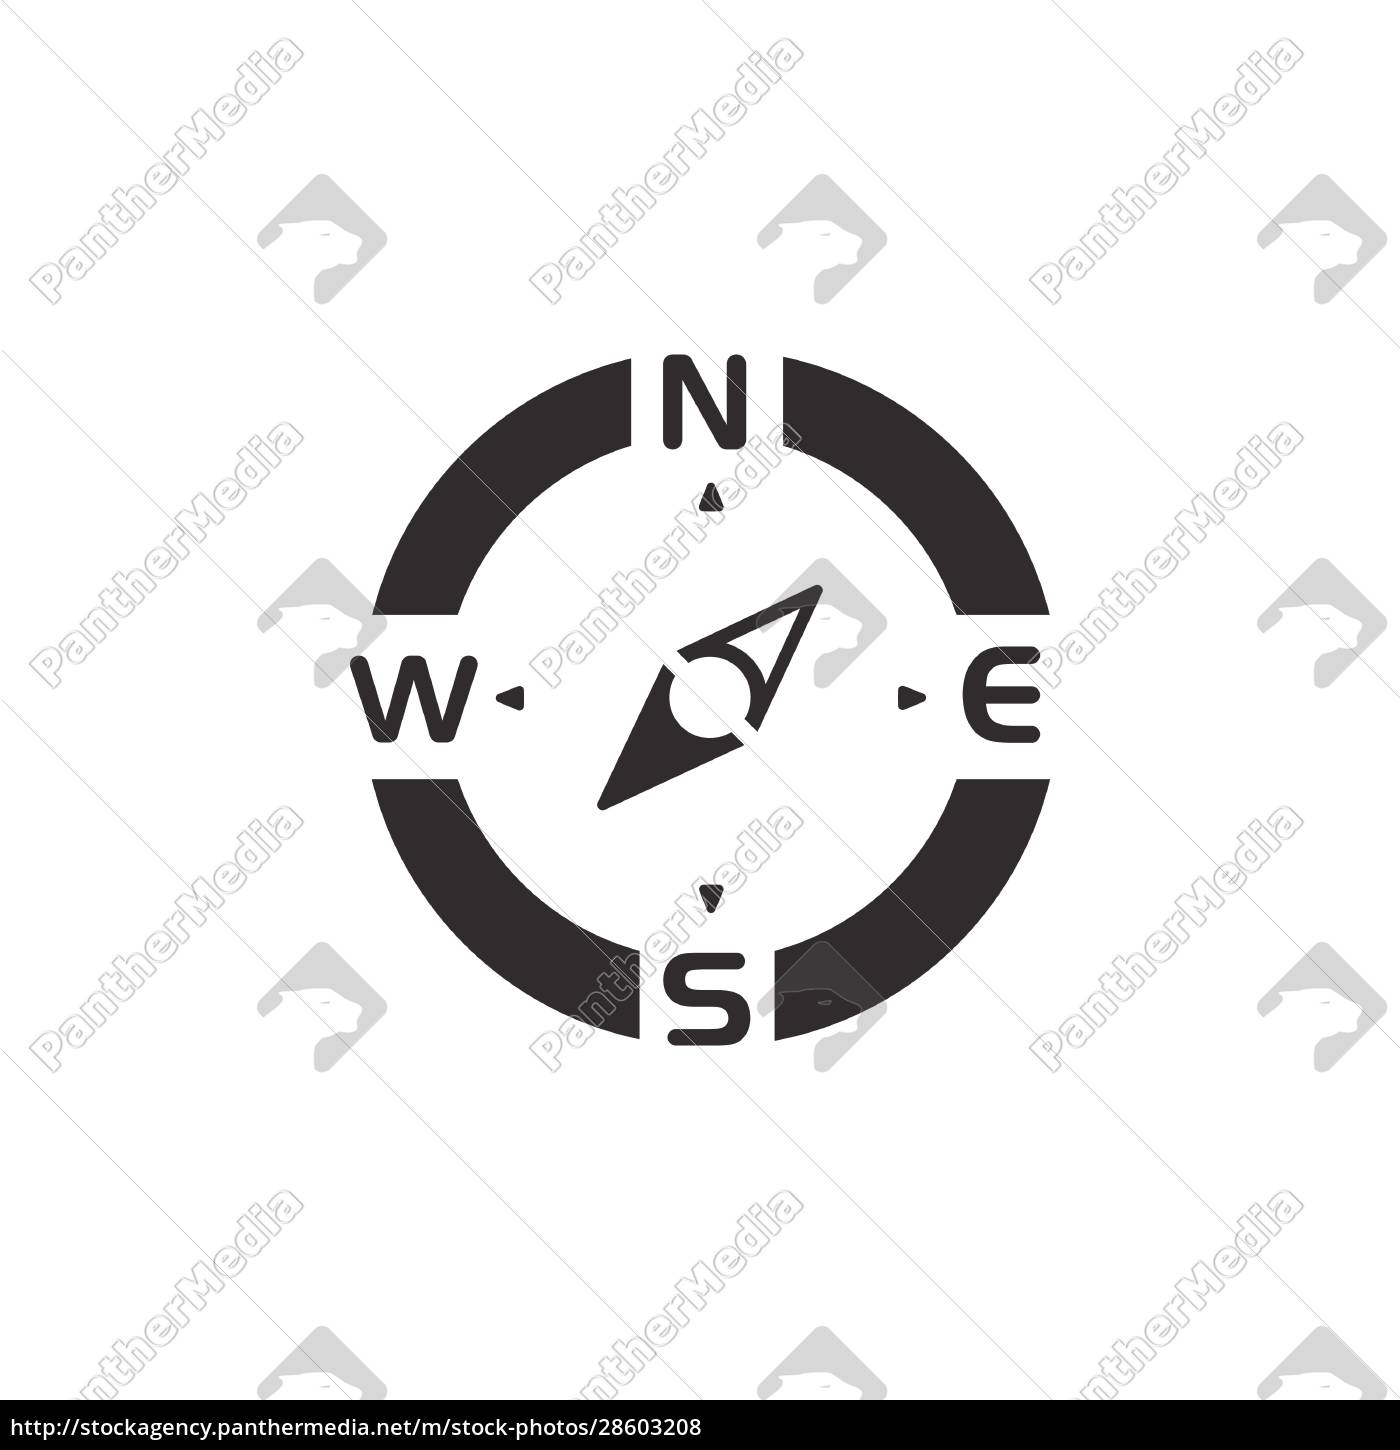 compass., south, west, direction., icon., weather - 28603208